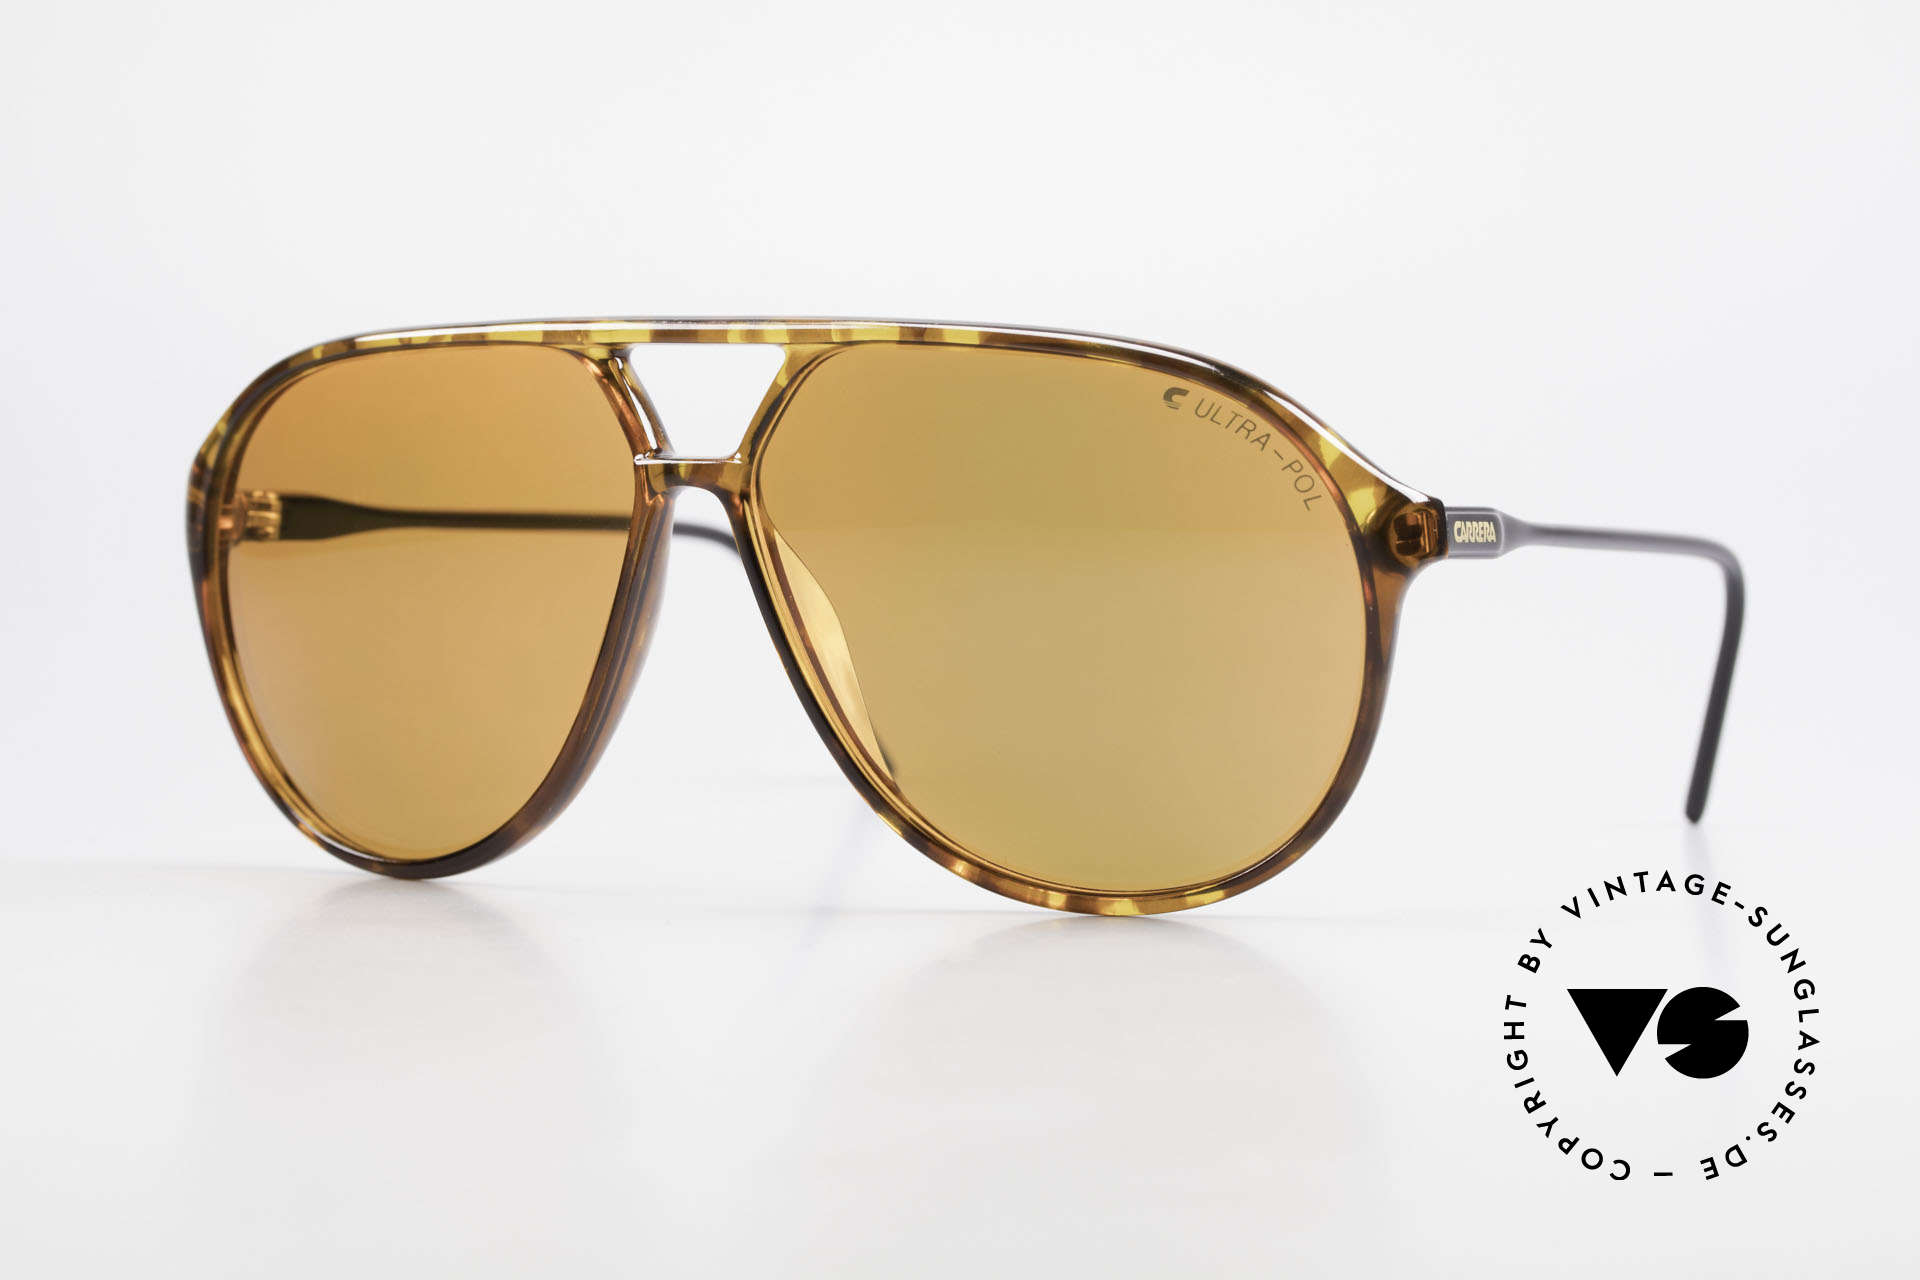 Carrera 5425 Polarized Sunglasses Aviator, vintage shades of the Carrera Collection from 1989/90, Made for Men